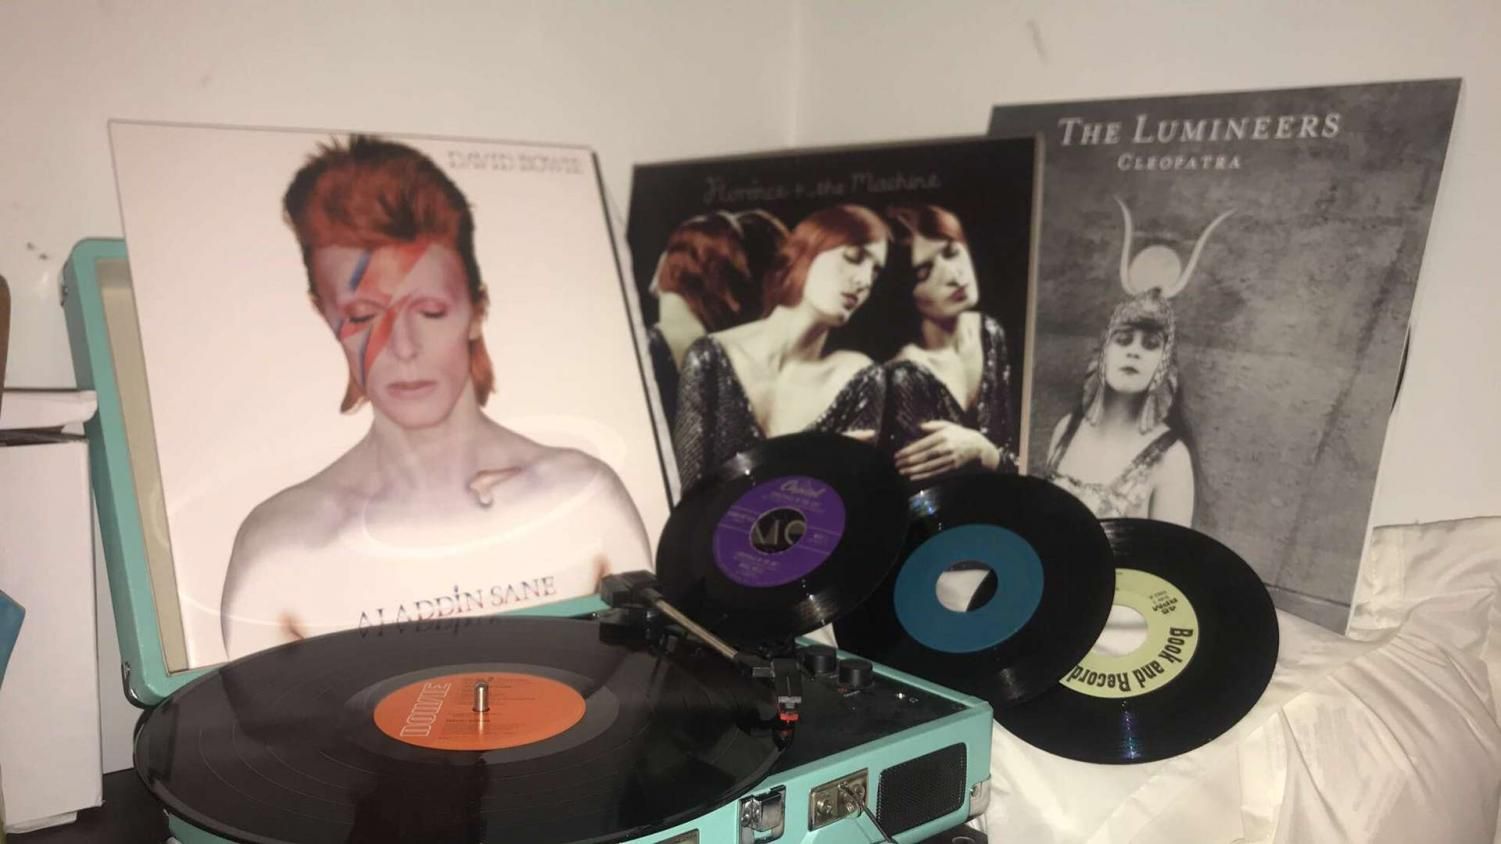 """The albums, """"Cleopatra"""" by The Lumineers, """"Aladdin Sane"""" by David Bowie and """"Ceremonials"""" by Florence + the Machine are displayed behind Myah Hrinko's Crosley turntable."""